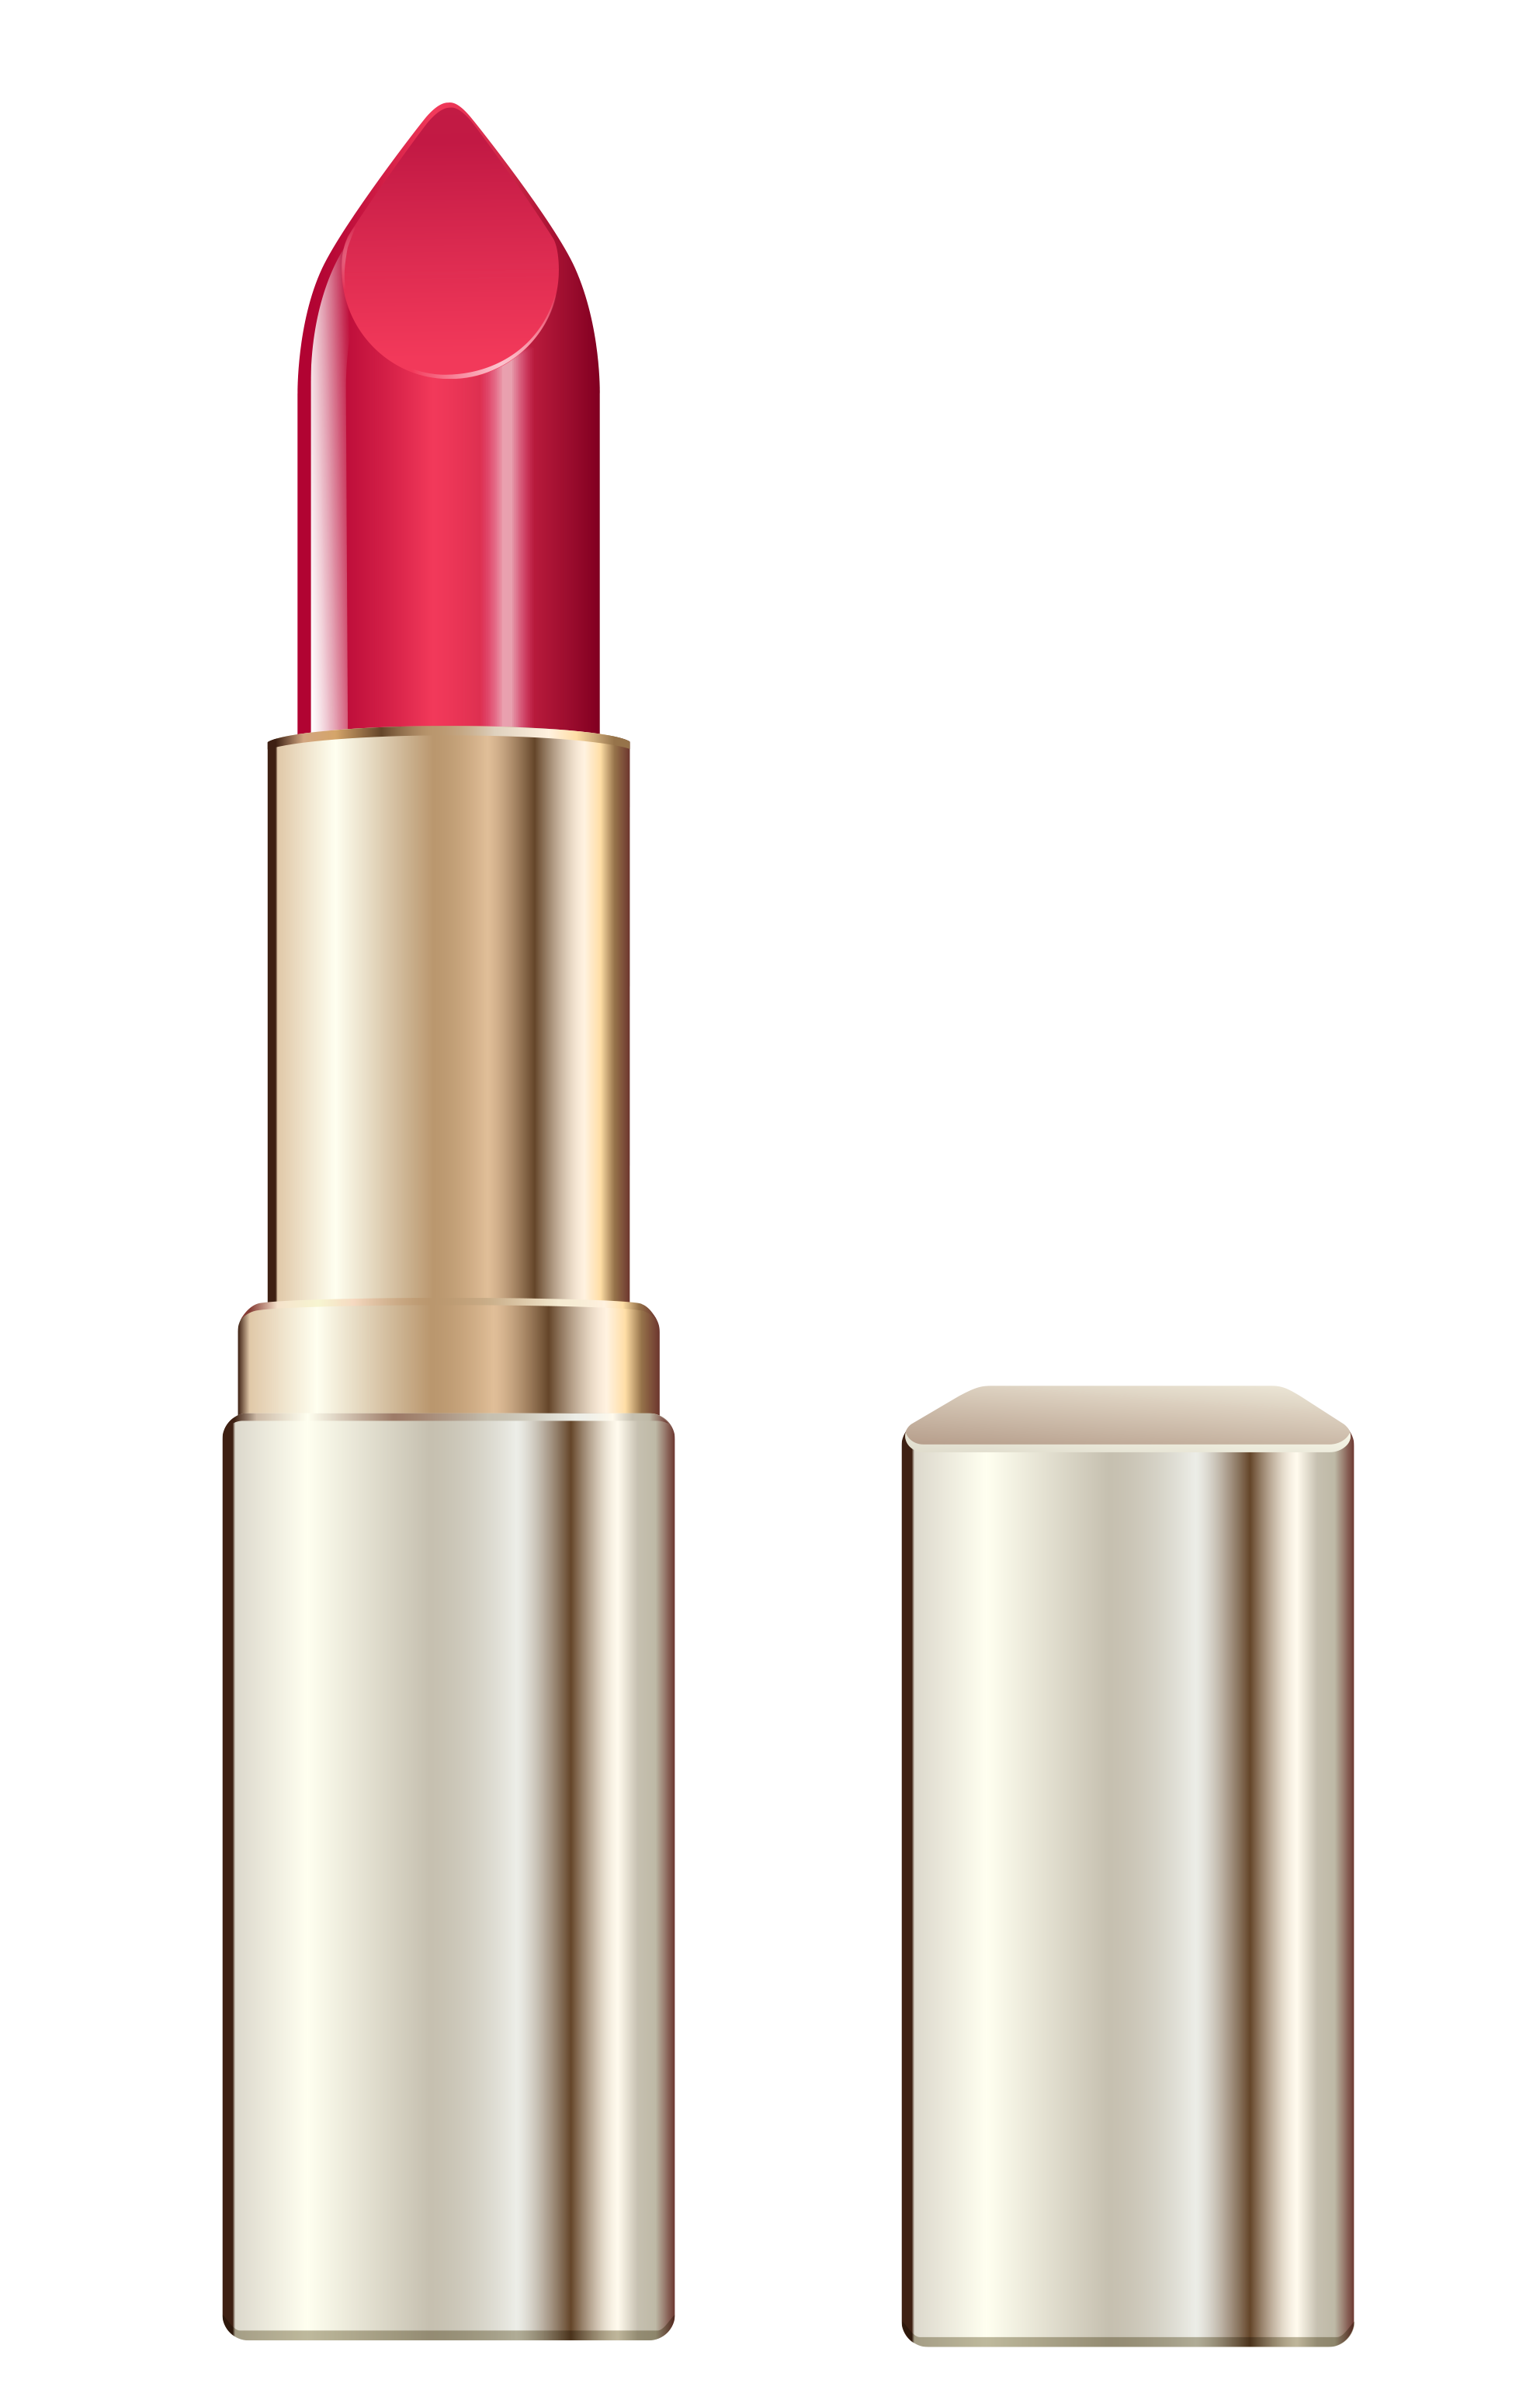 Lipstick PNG Free Download SVG Clip arts